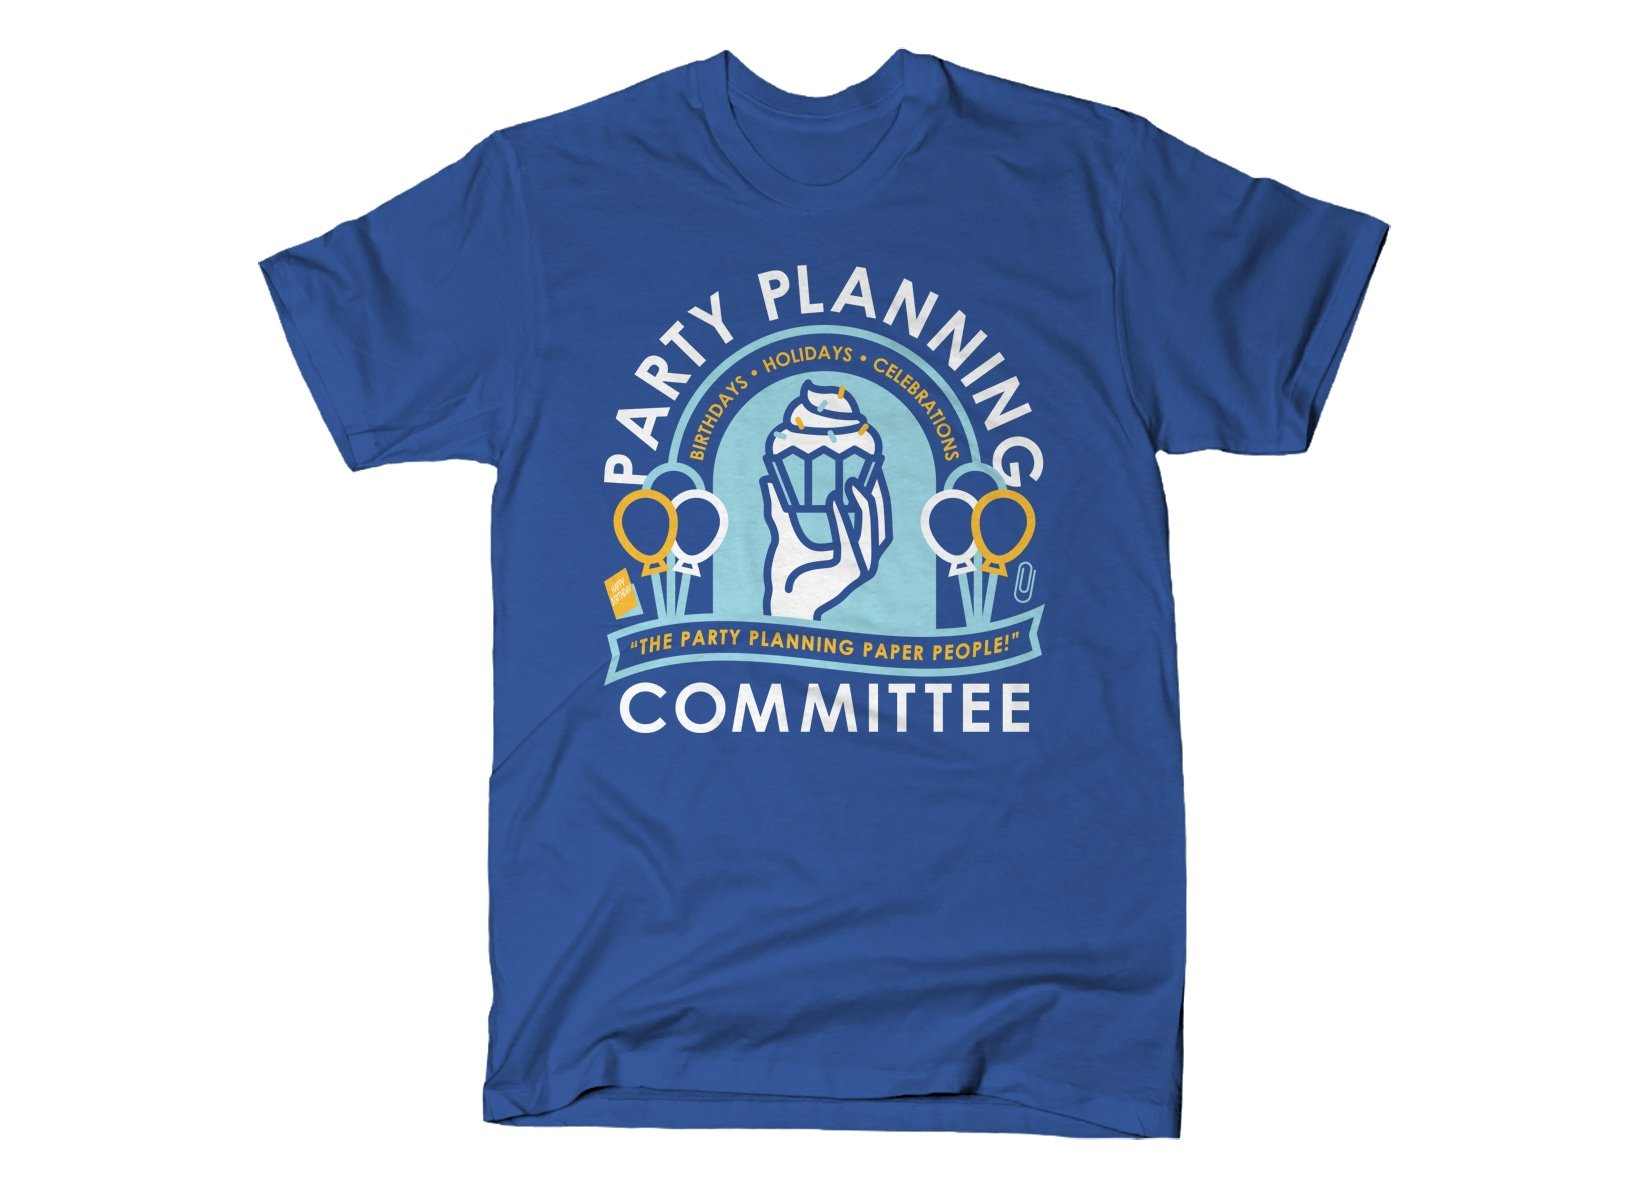 Party Planning Committee on Mens T-Shirt